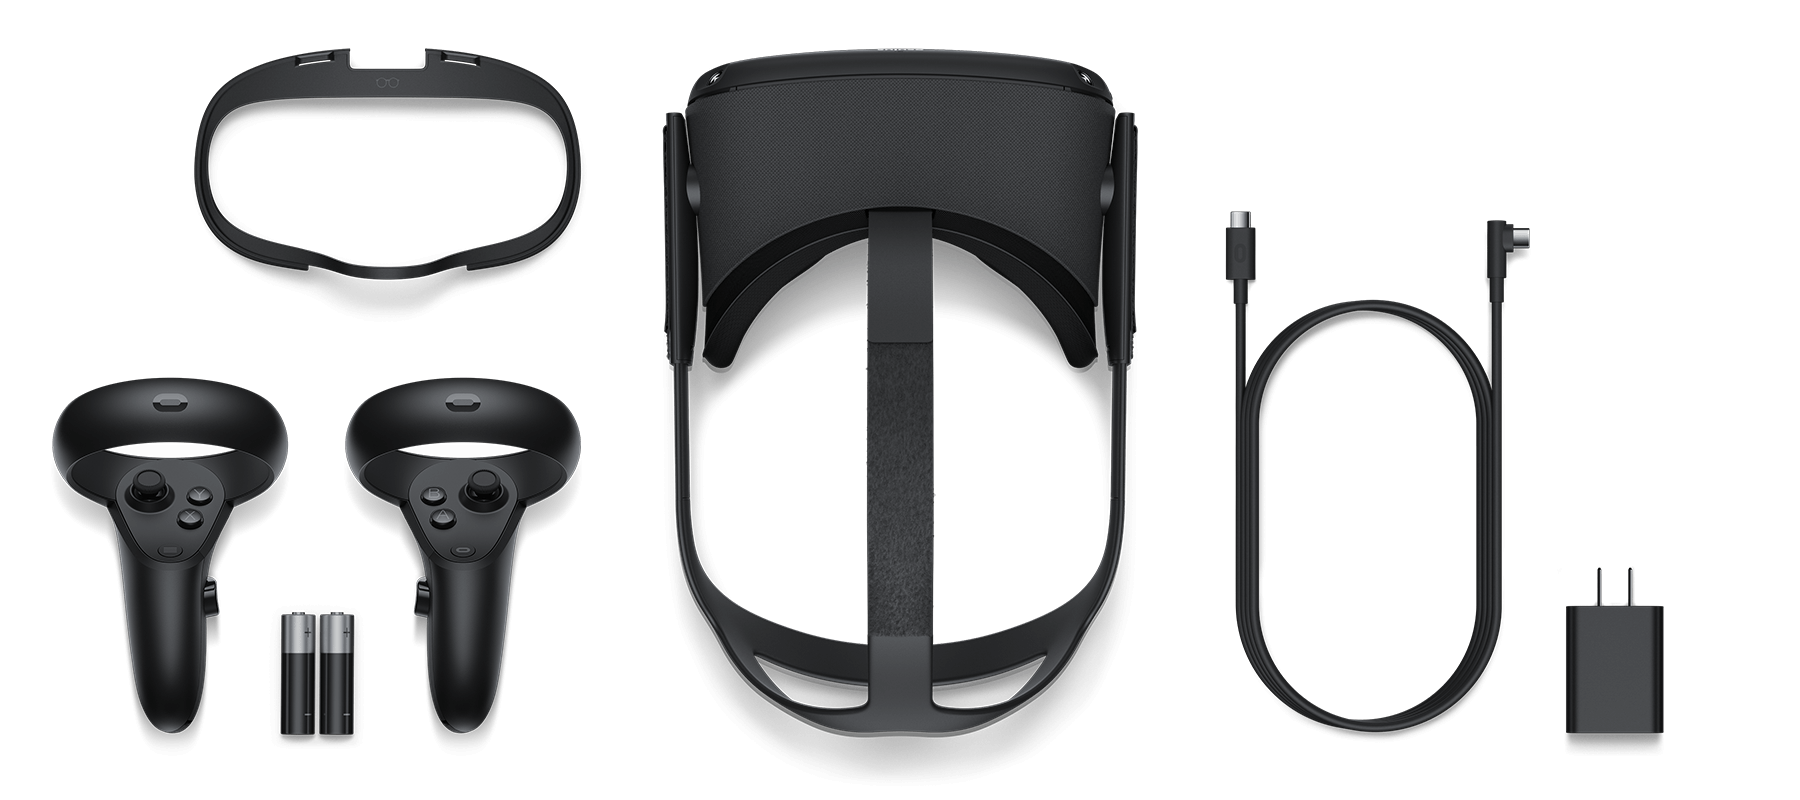 Skyrim and other demanding Oculus Rift titles are coming to the cheaper Quest